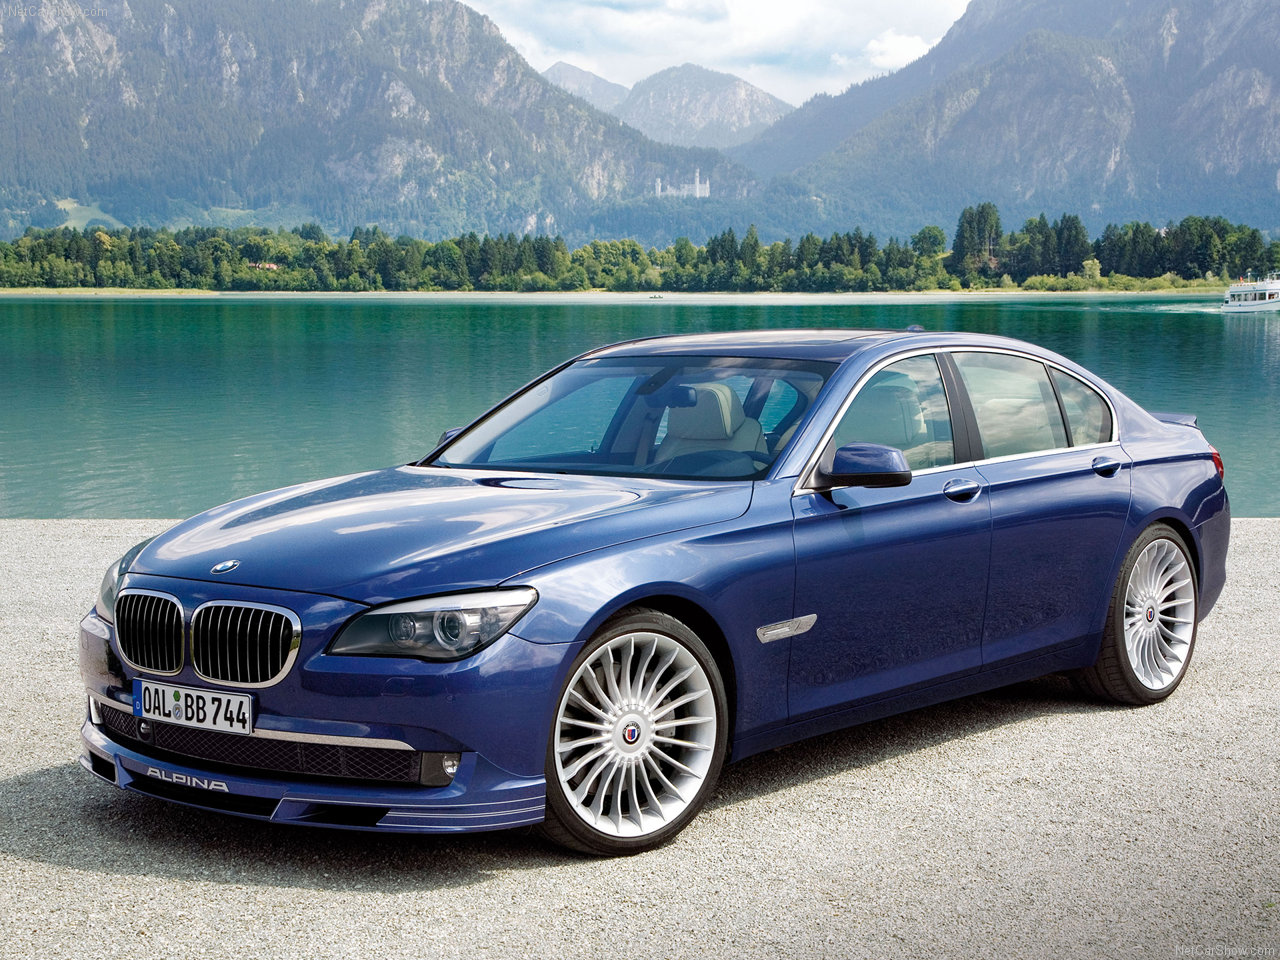 Picture of 2007 BMW Alpina B7 Base